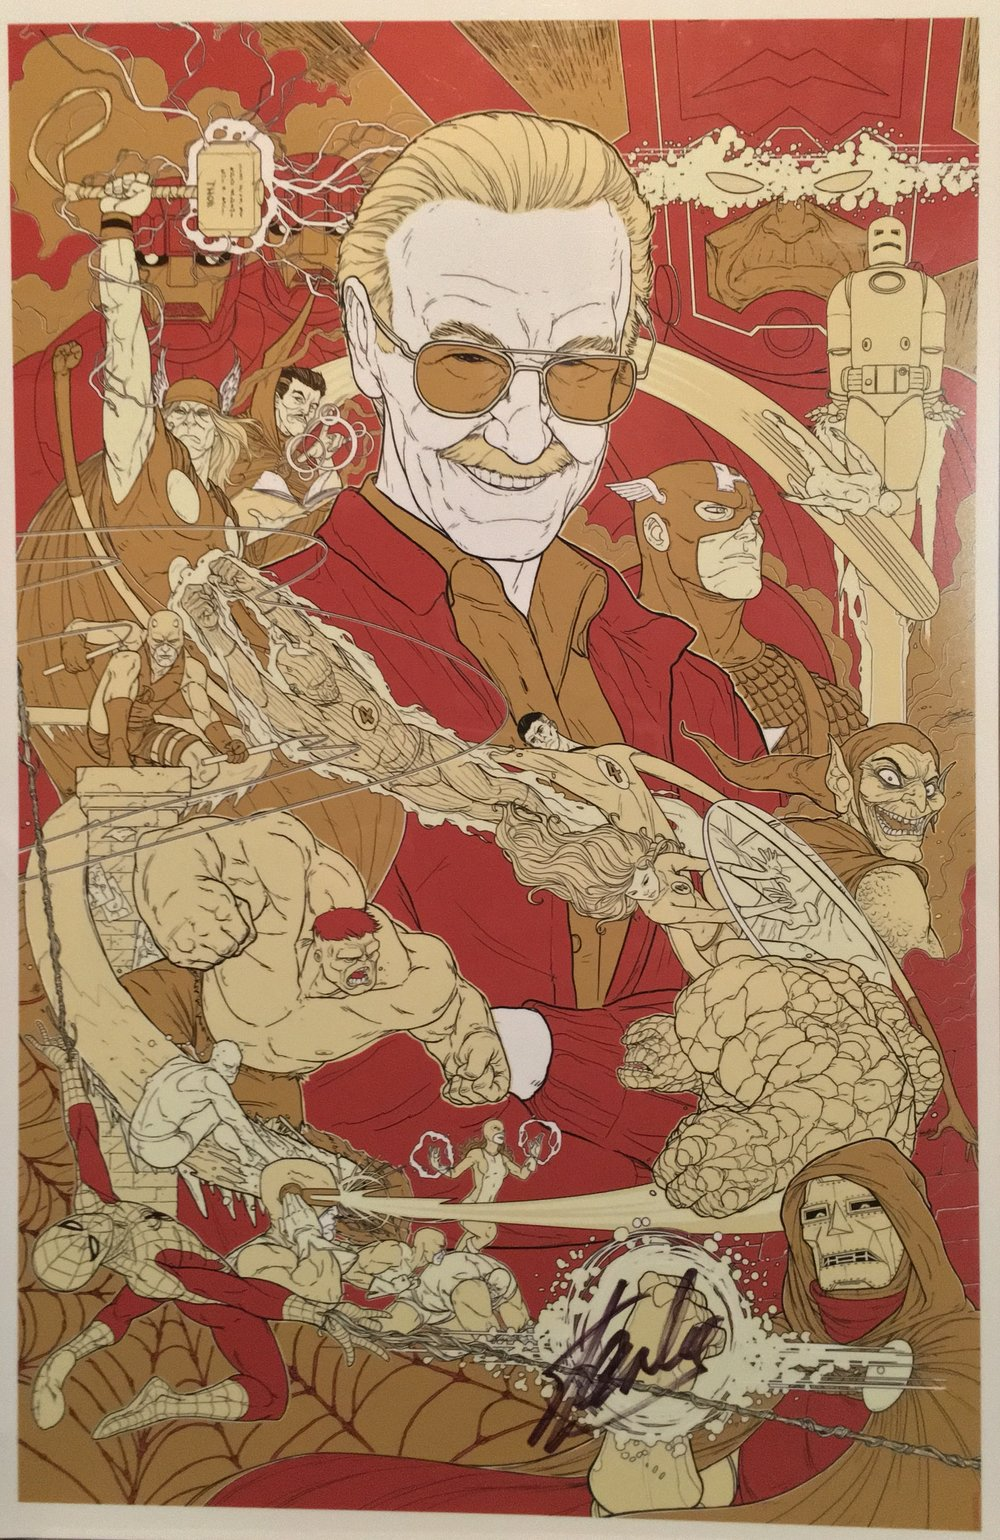 24 - Stan Lee SDCC 2013 Art Print from Sideshow 1.jpg